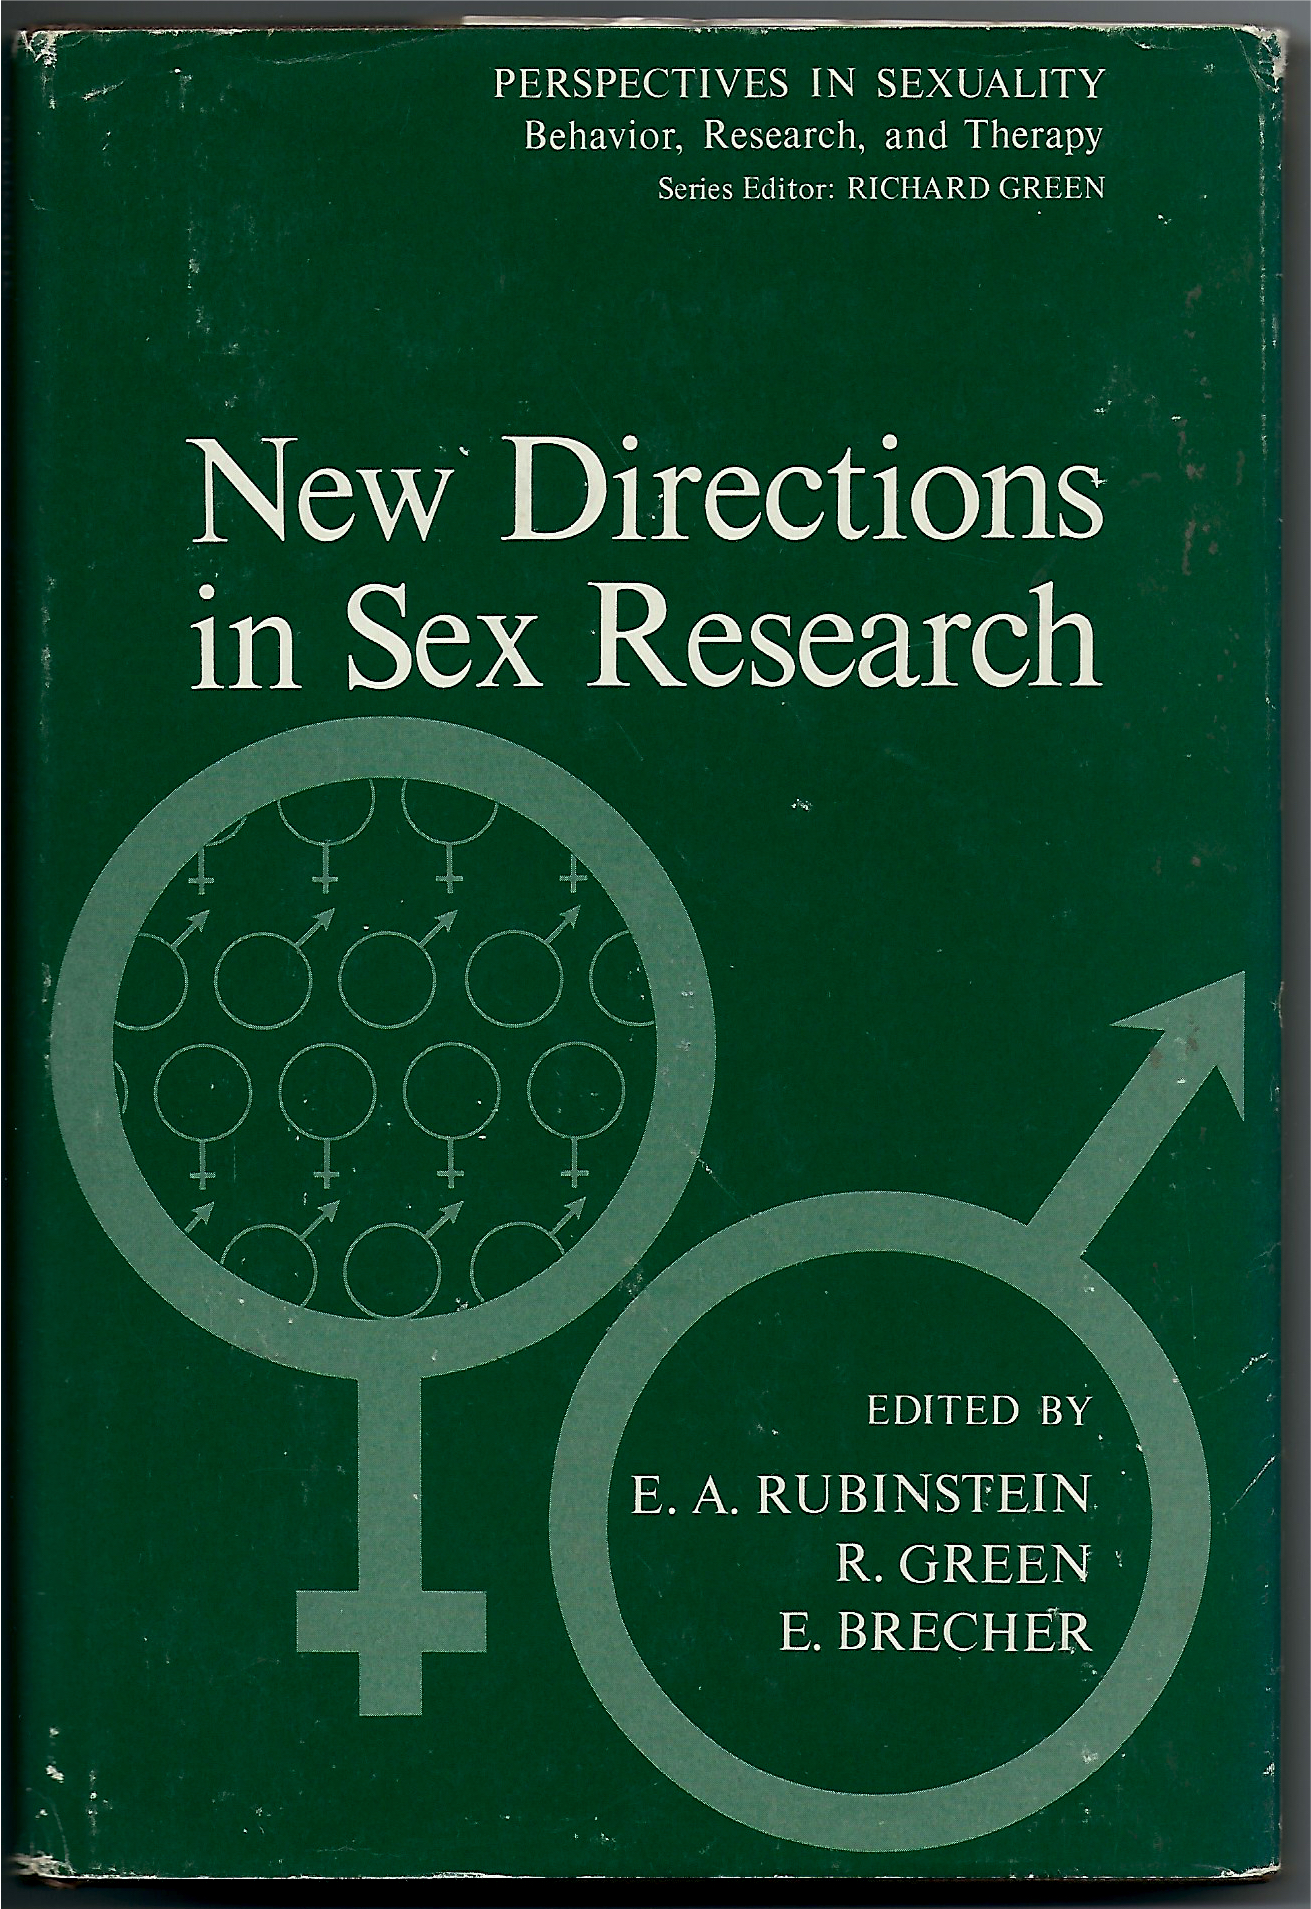 New Directions in Sex Research - Eli A. Rubinstein, Richard Green, & Ed Brecher1975